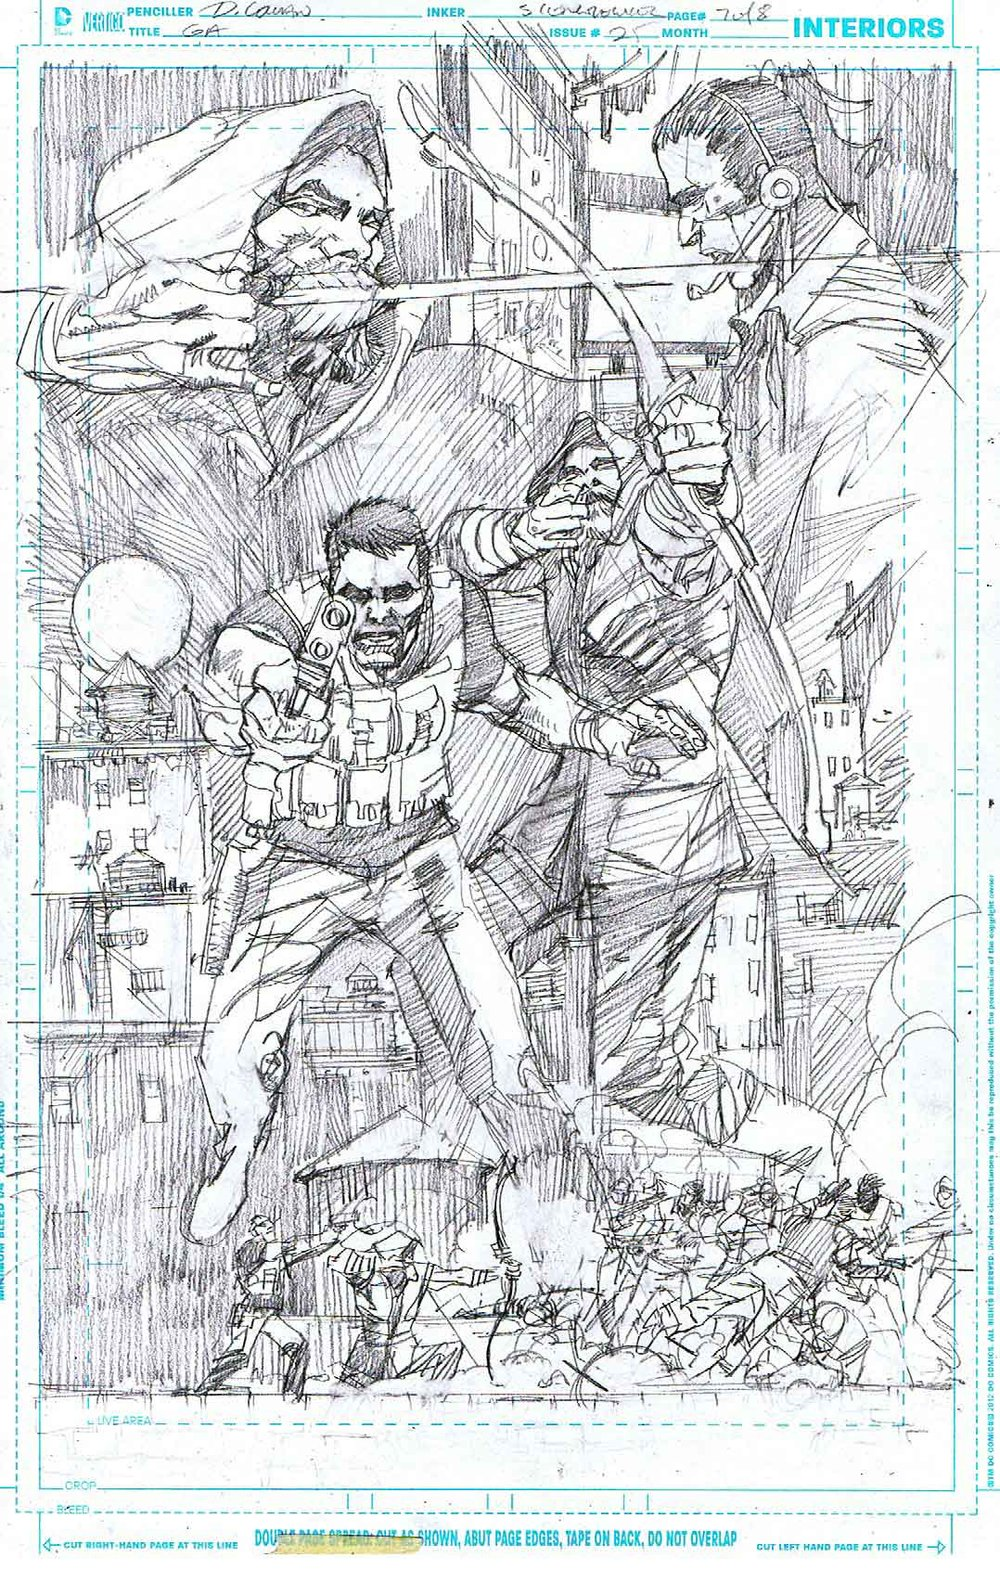 Green Arrow #25 - Page 7 - Pencils